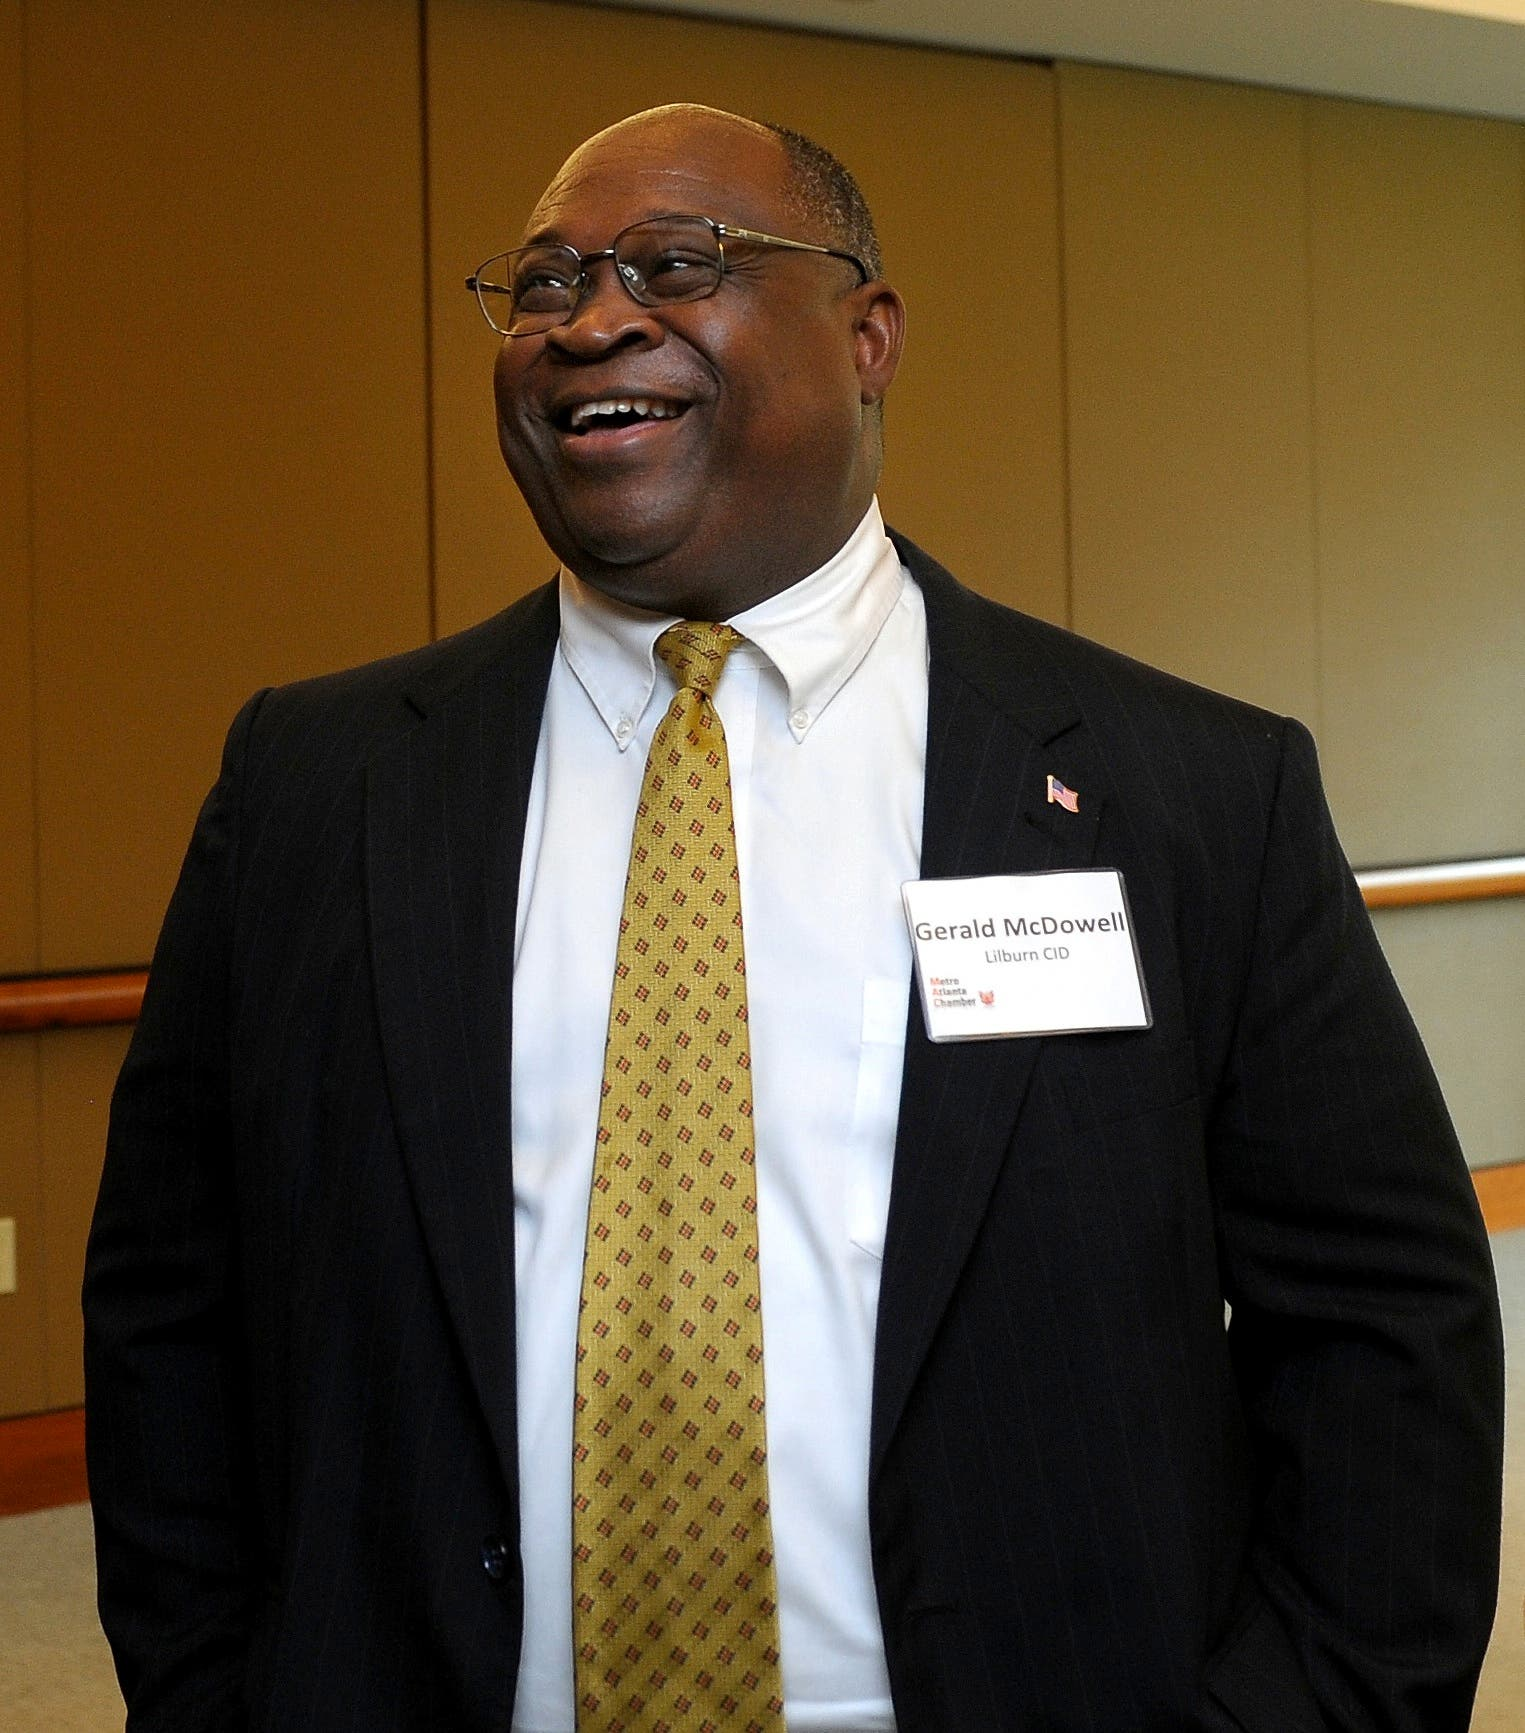 Gerald McDowell Named Airport West CID's New Executive Director